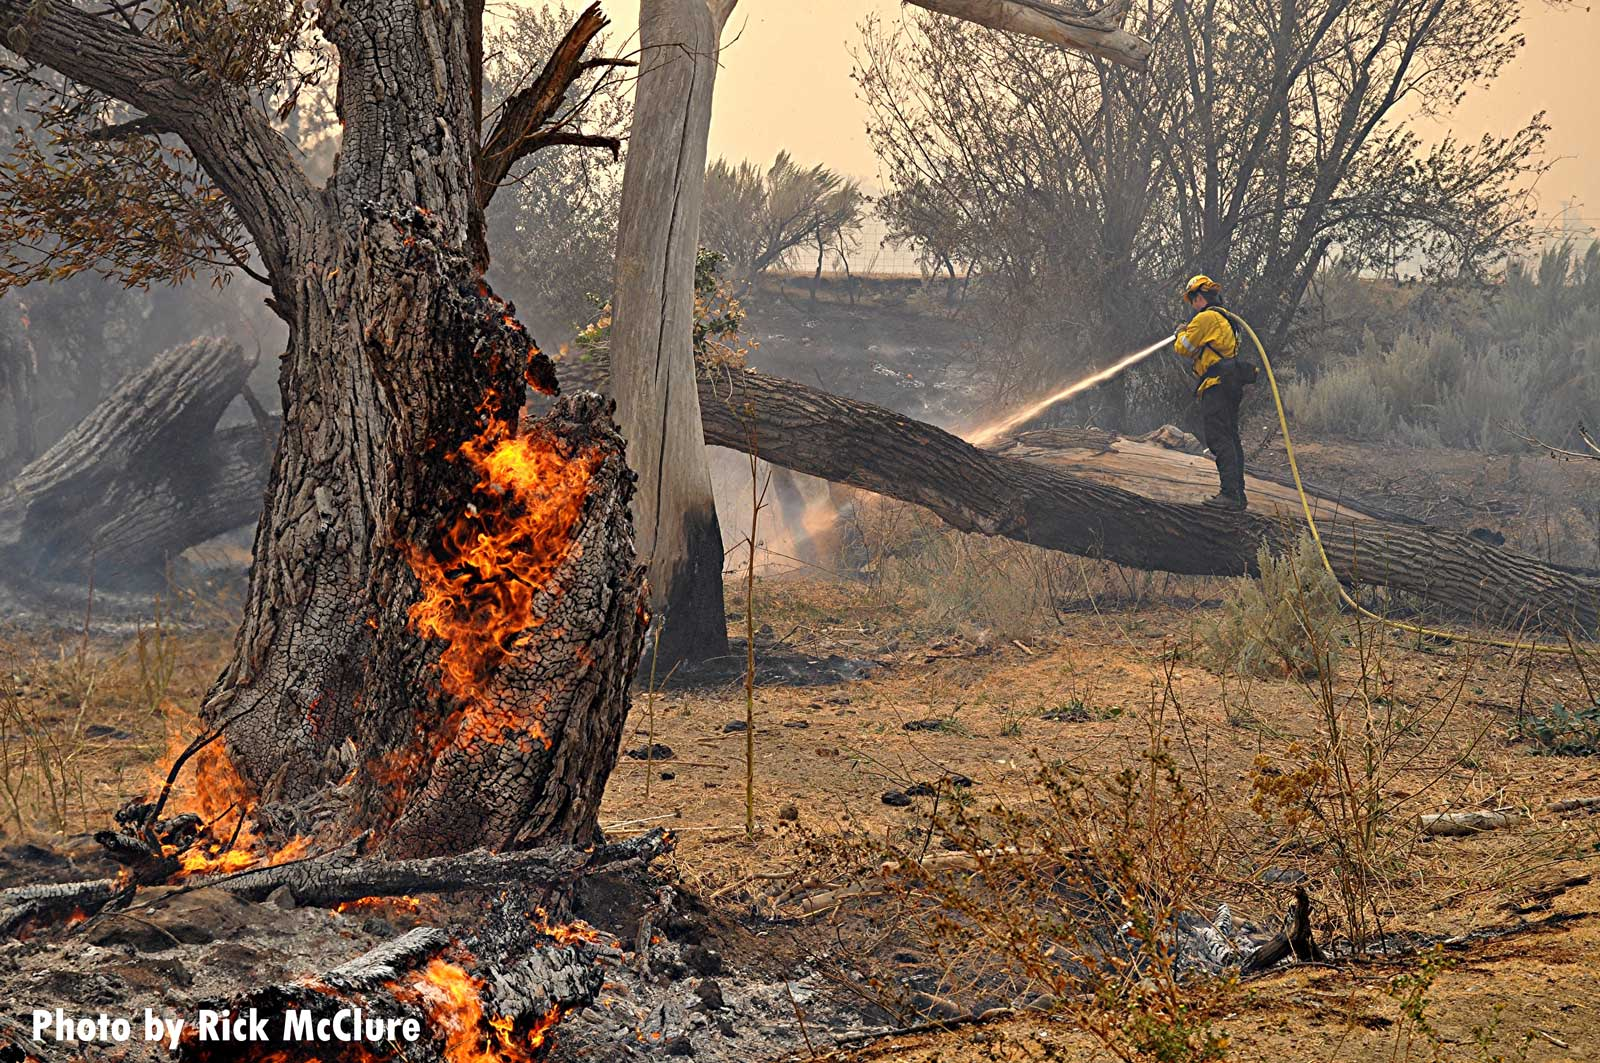 Fire burns through a tree with a firefighter and a hoseline in the background